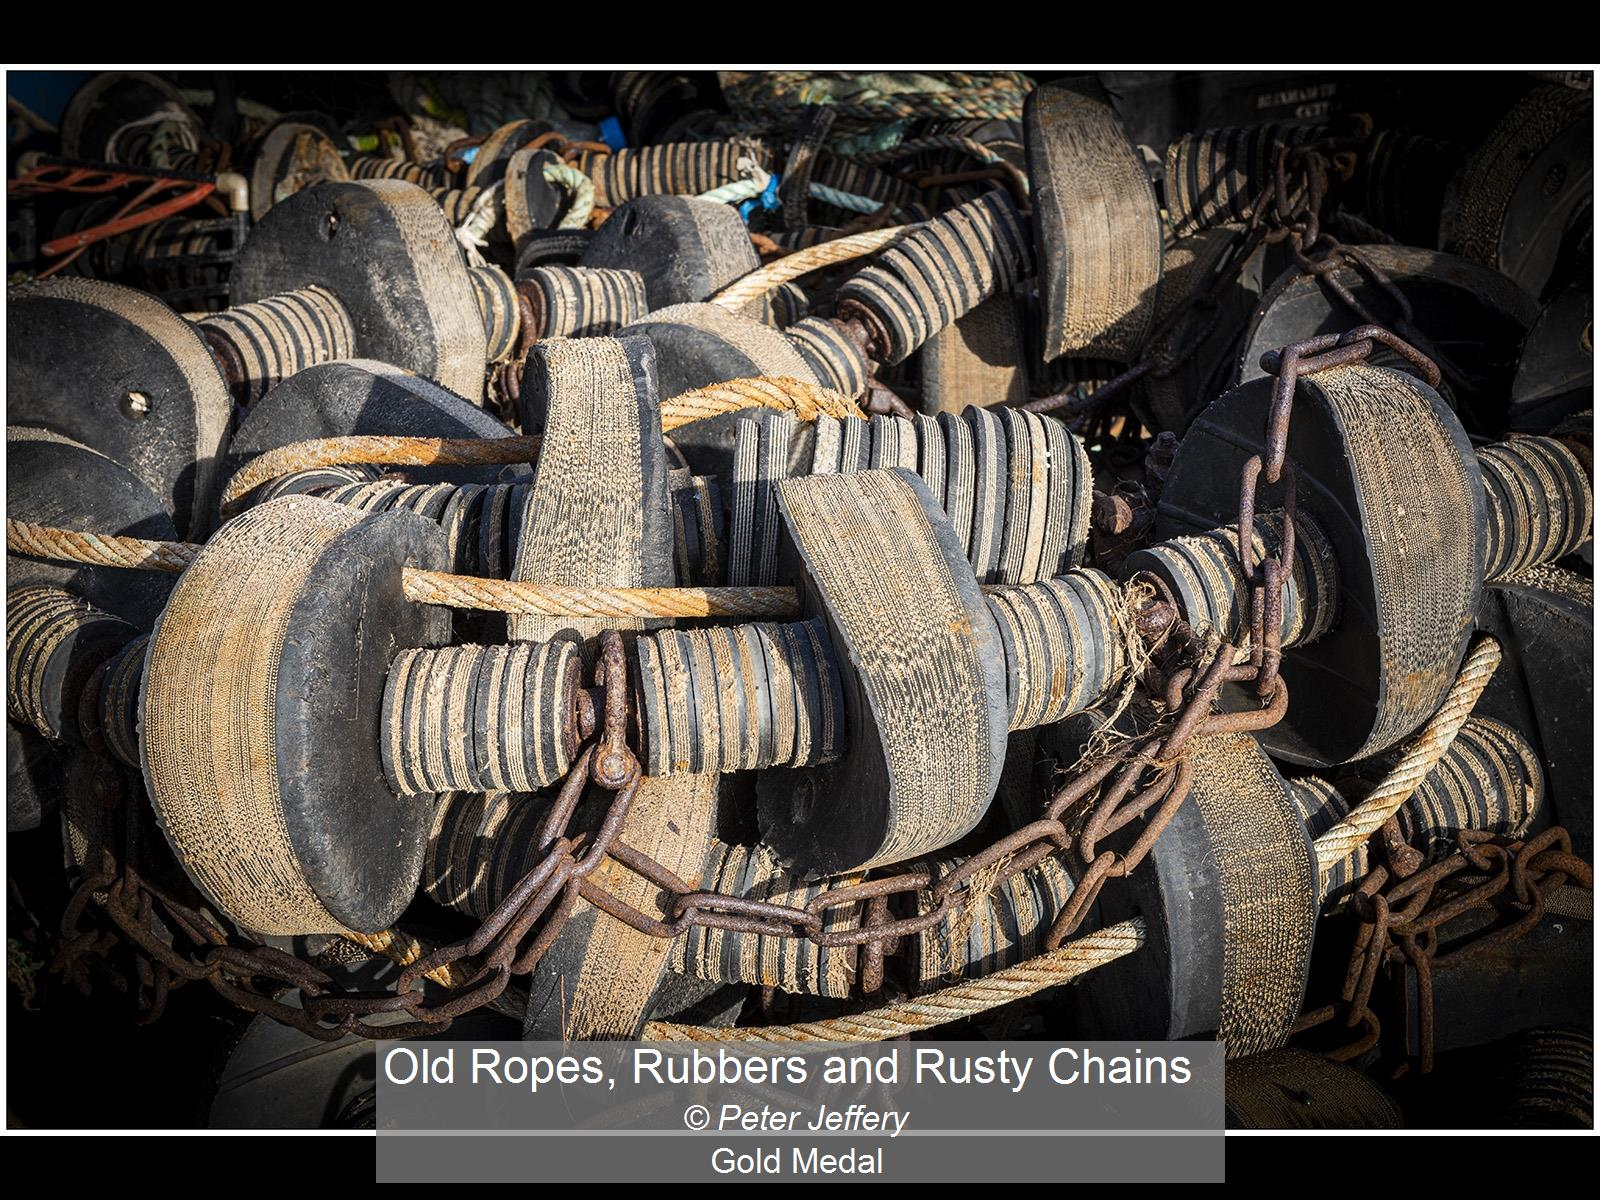 Old Ropes, Rubbers and Rusty Chains_Pete